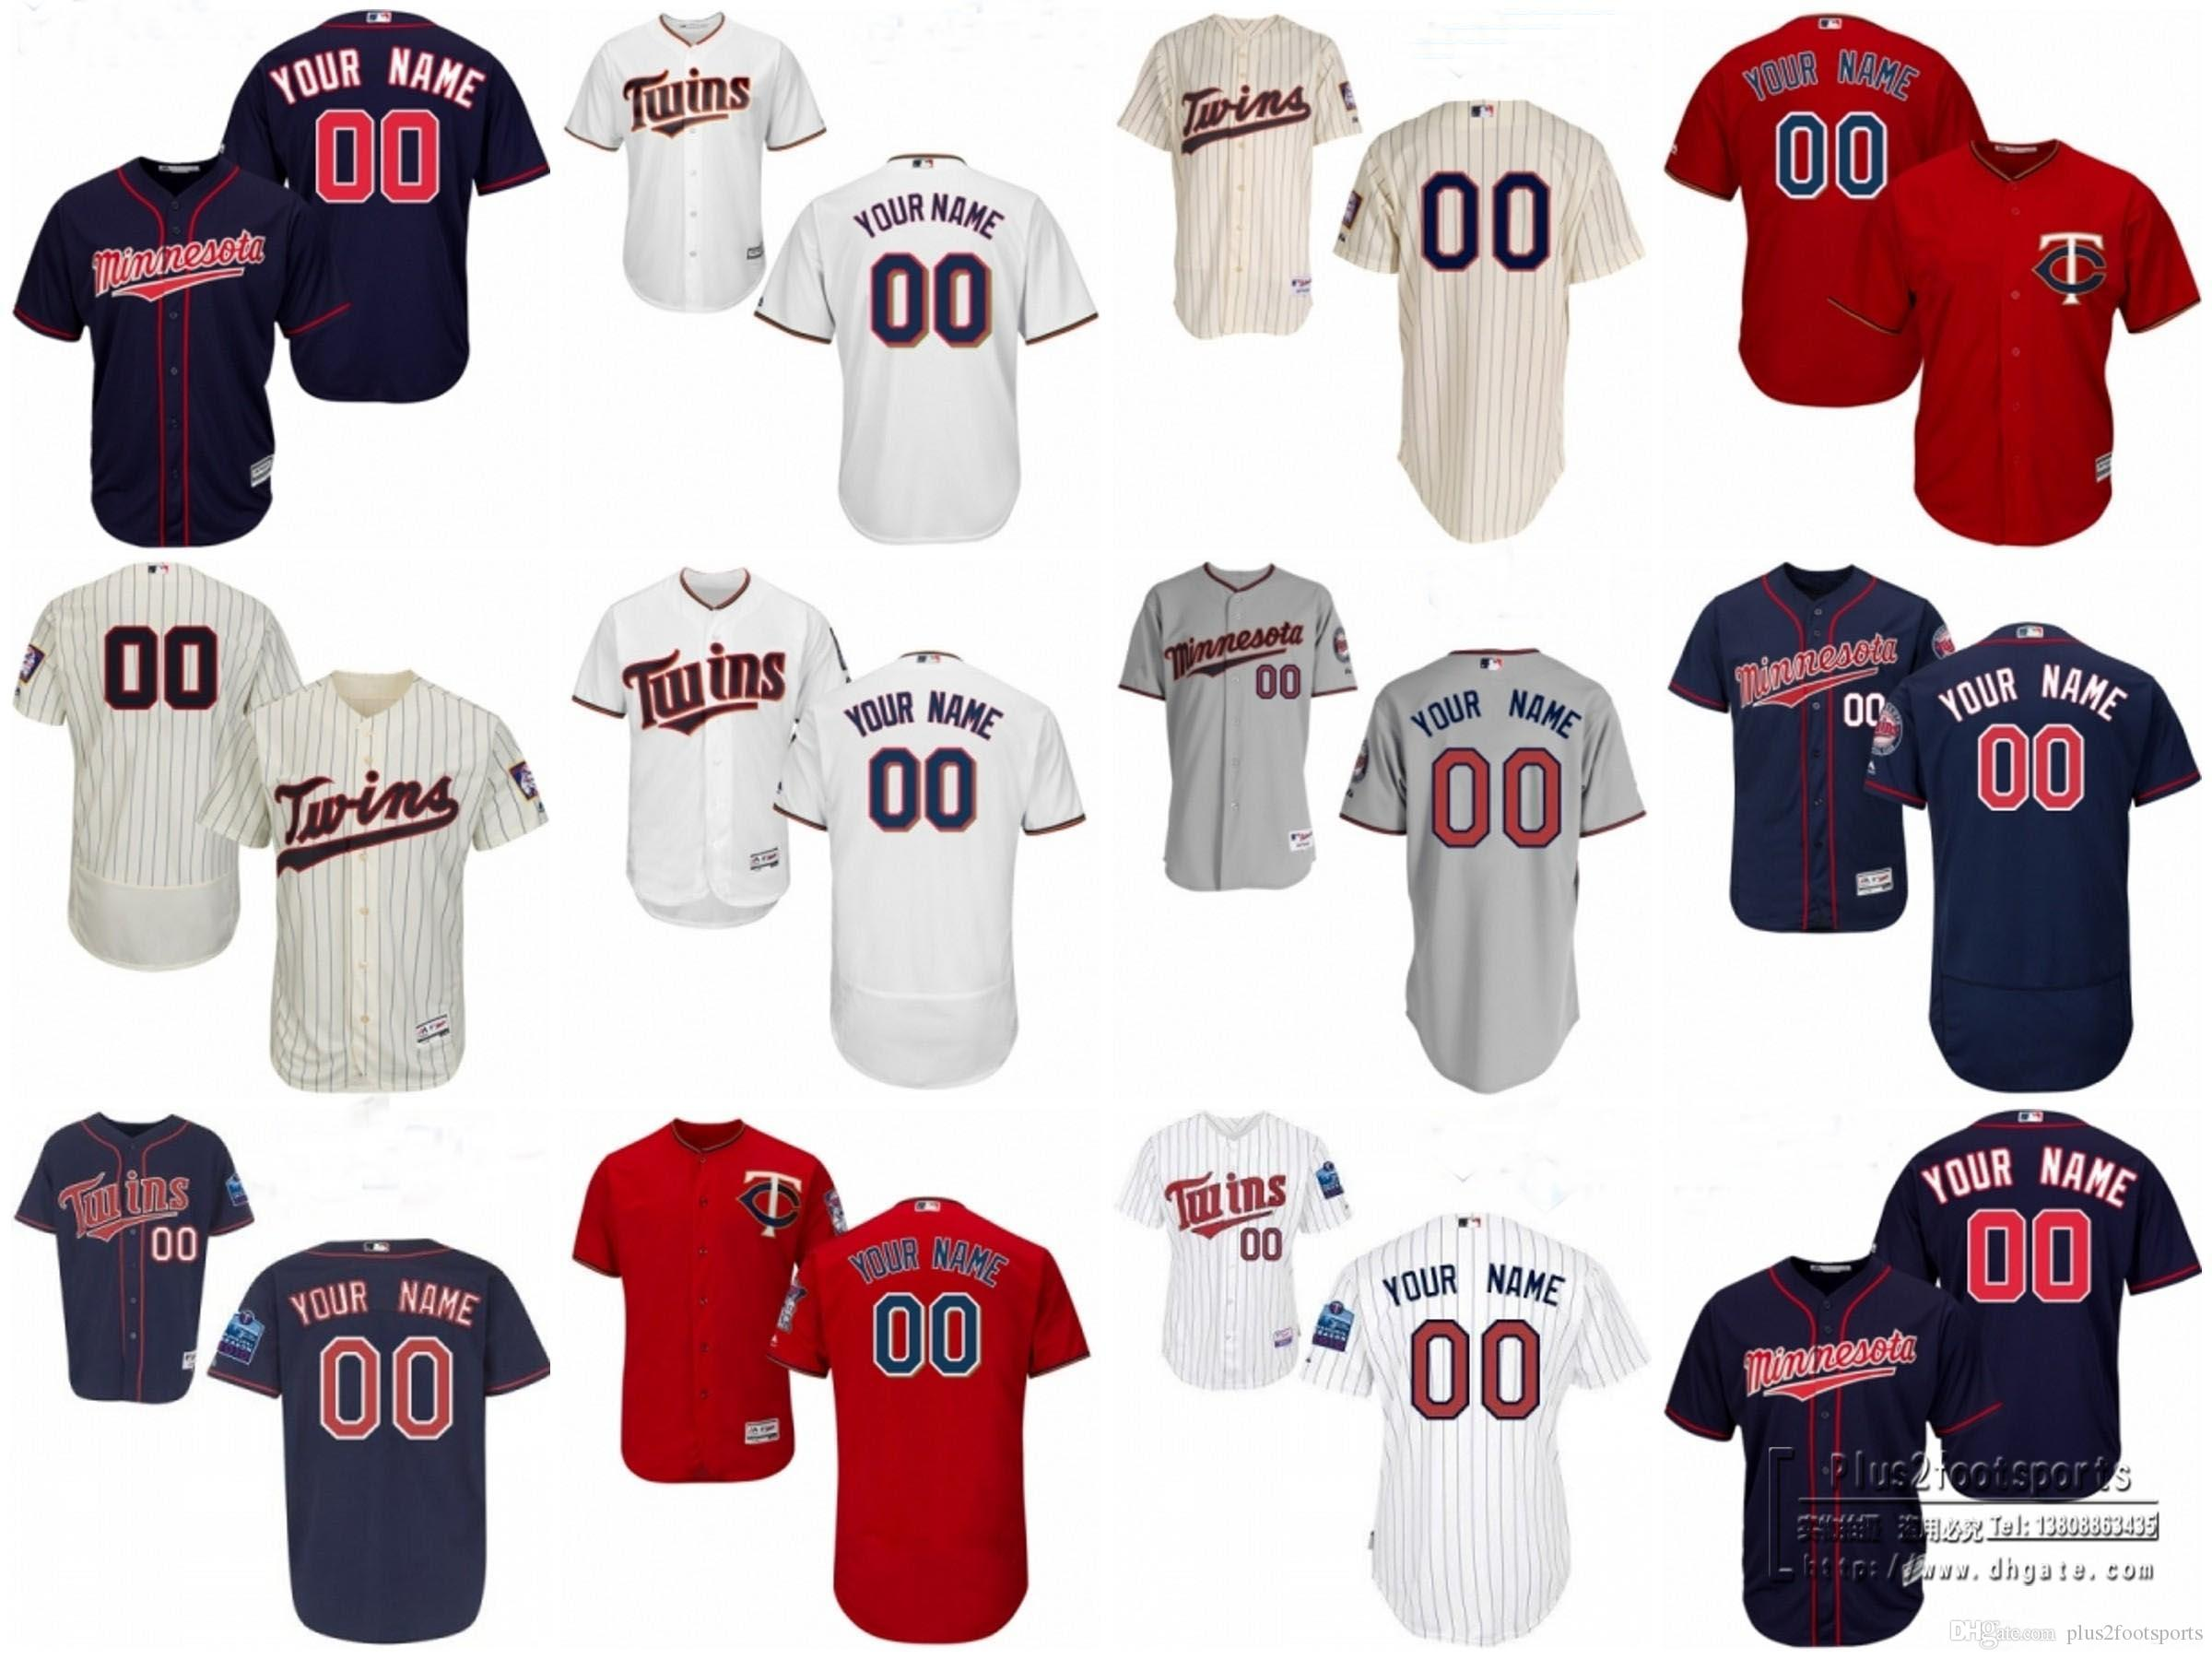 ... 2017 Baseball Jerseys MenS Minnesota Twins Customized White Red Navy  Stripe Cream Flexbase Cool Base Authentic Mens Minnesota Twins Majestic ... 6350cc99e